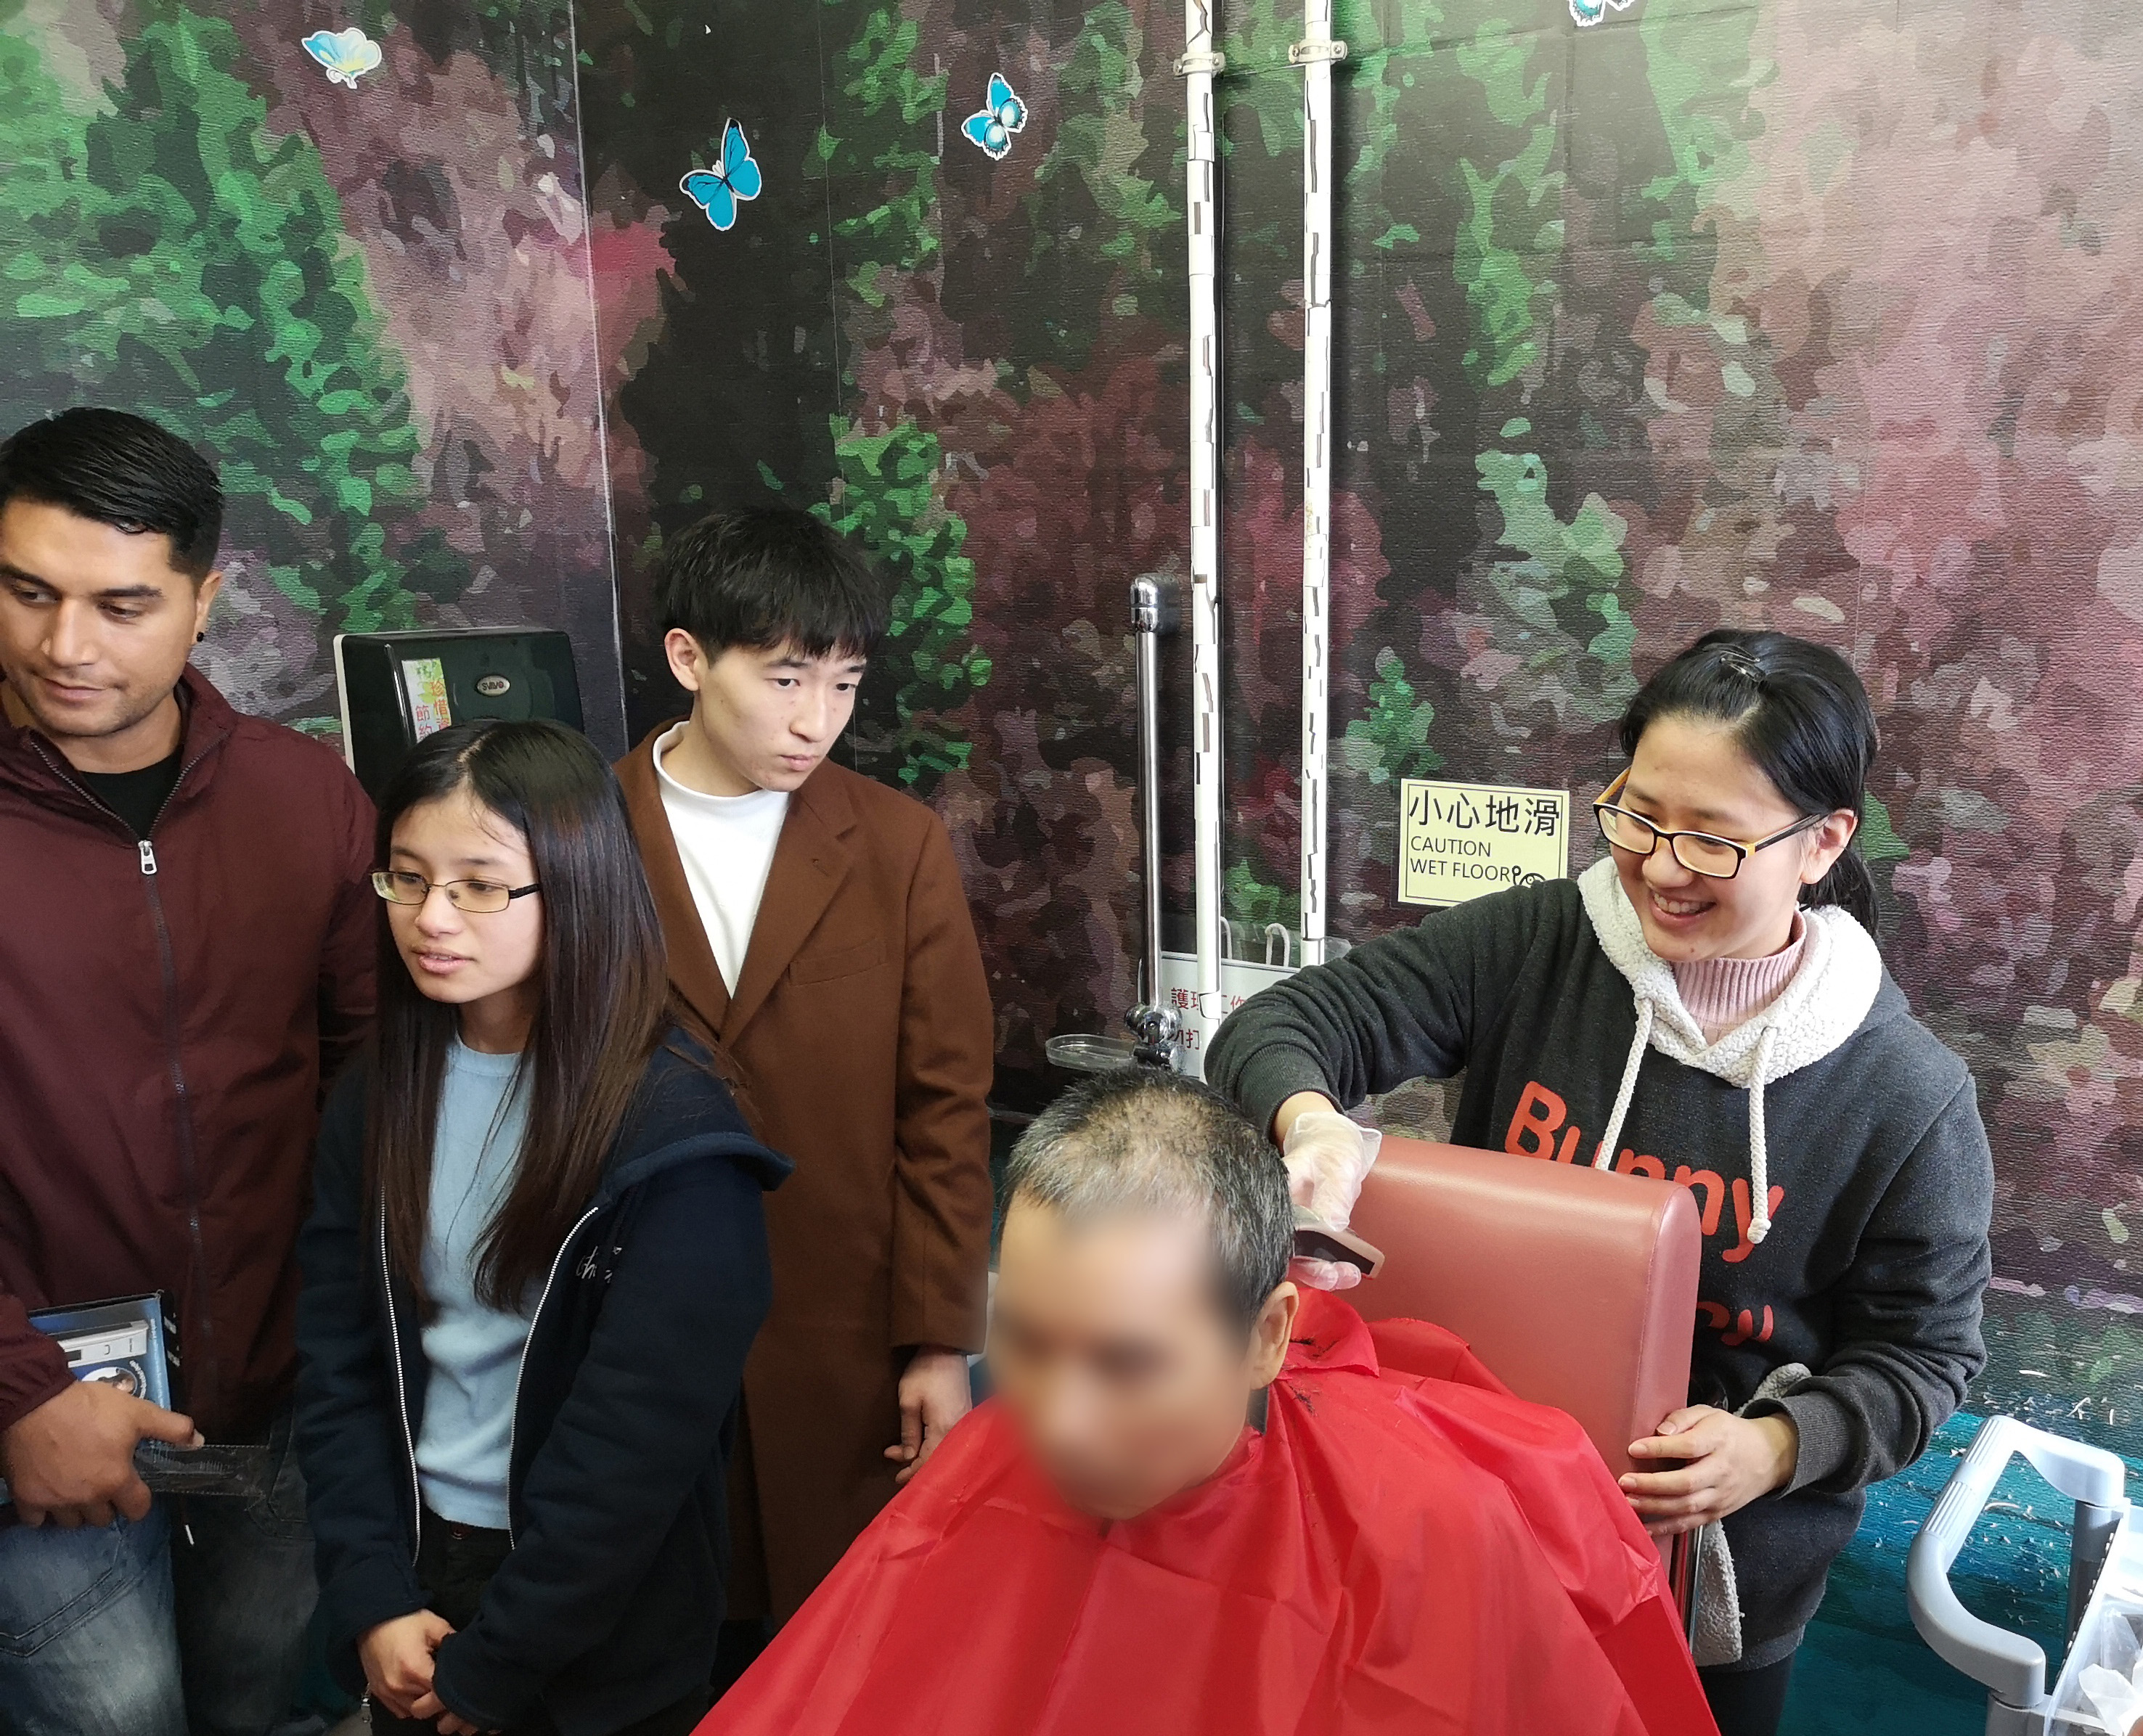 HPSHCC Community Barber Service Team's First Service - Photo - 11